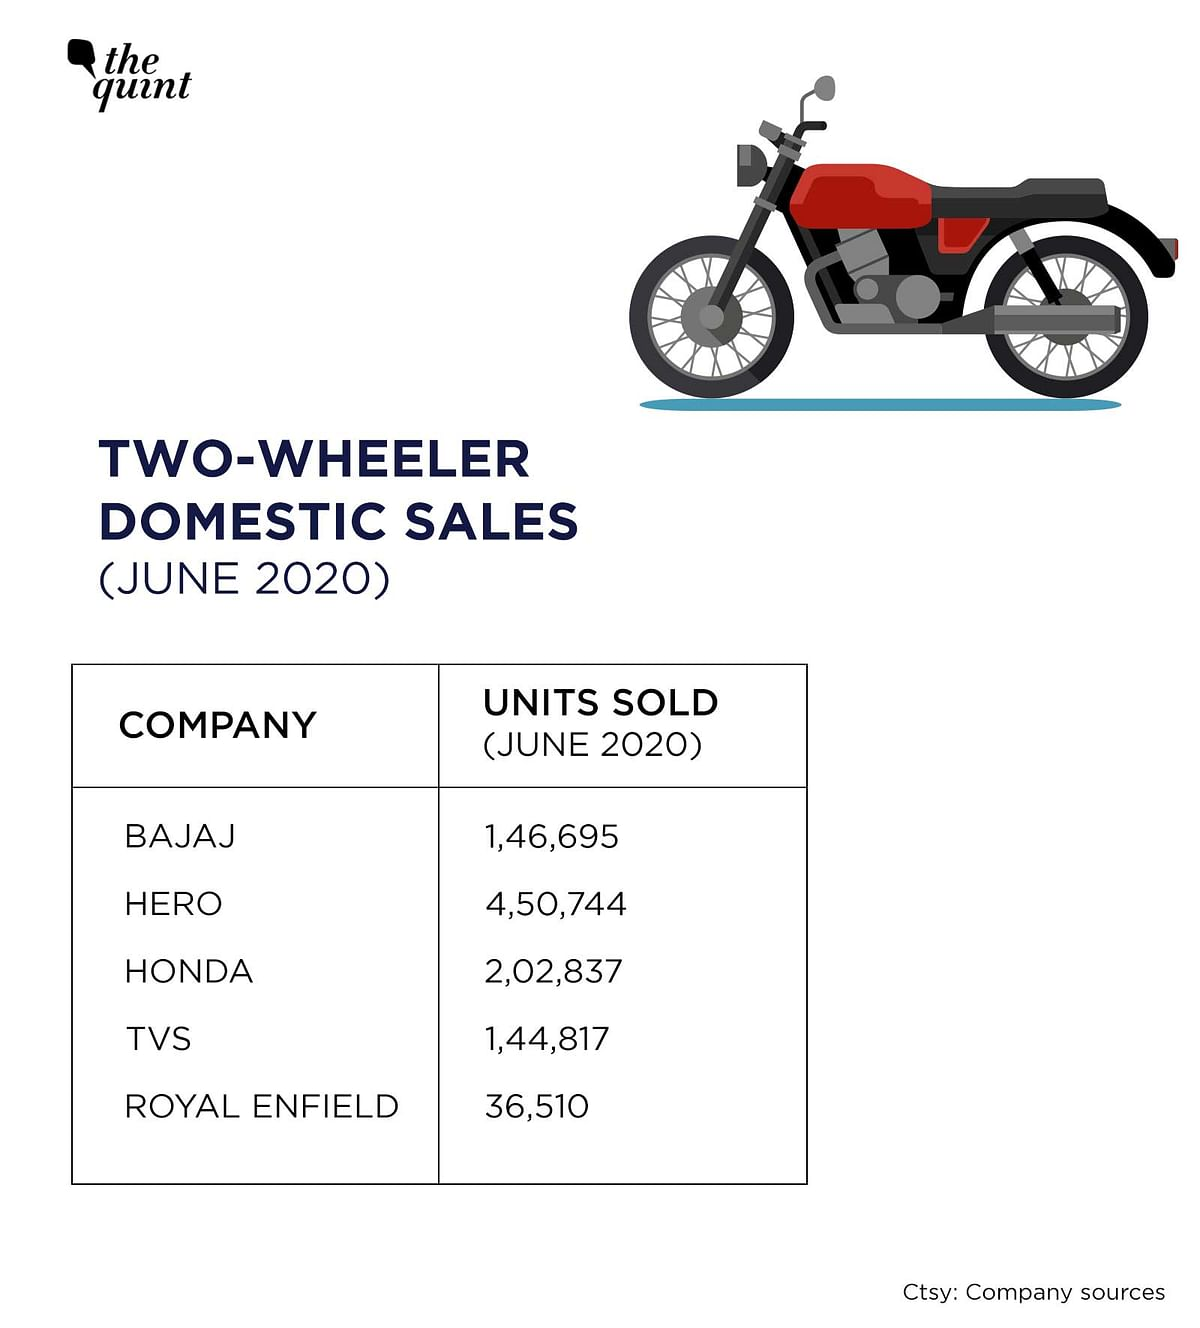 Two-wheeler domestic sales have picked up in June.